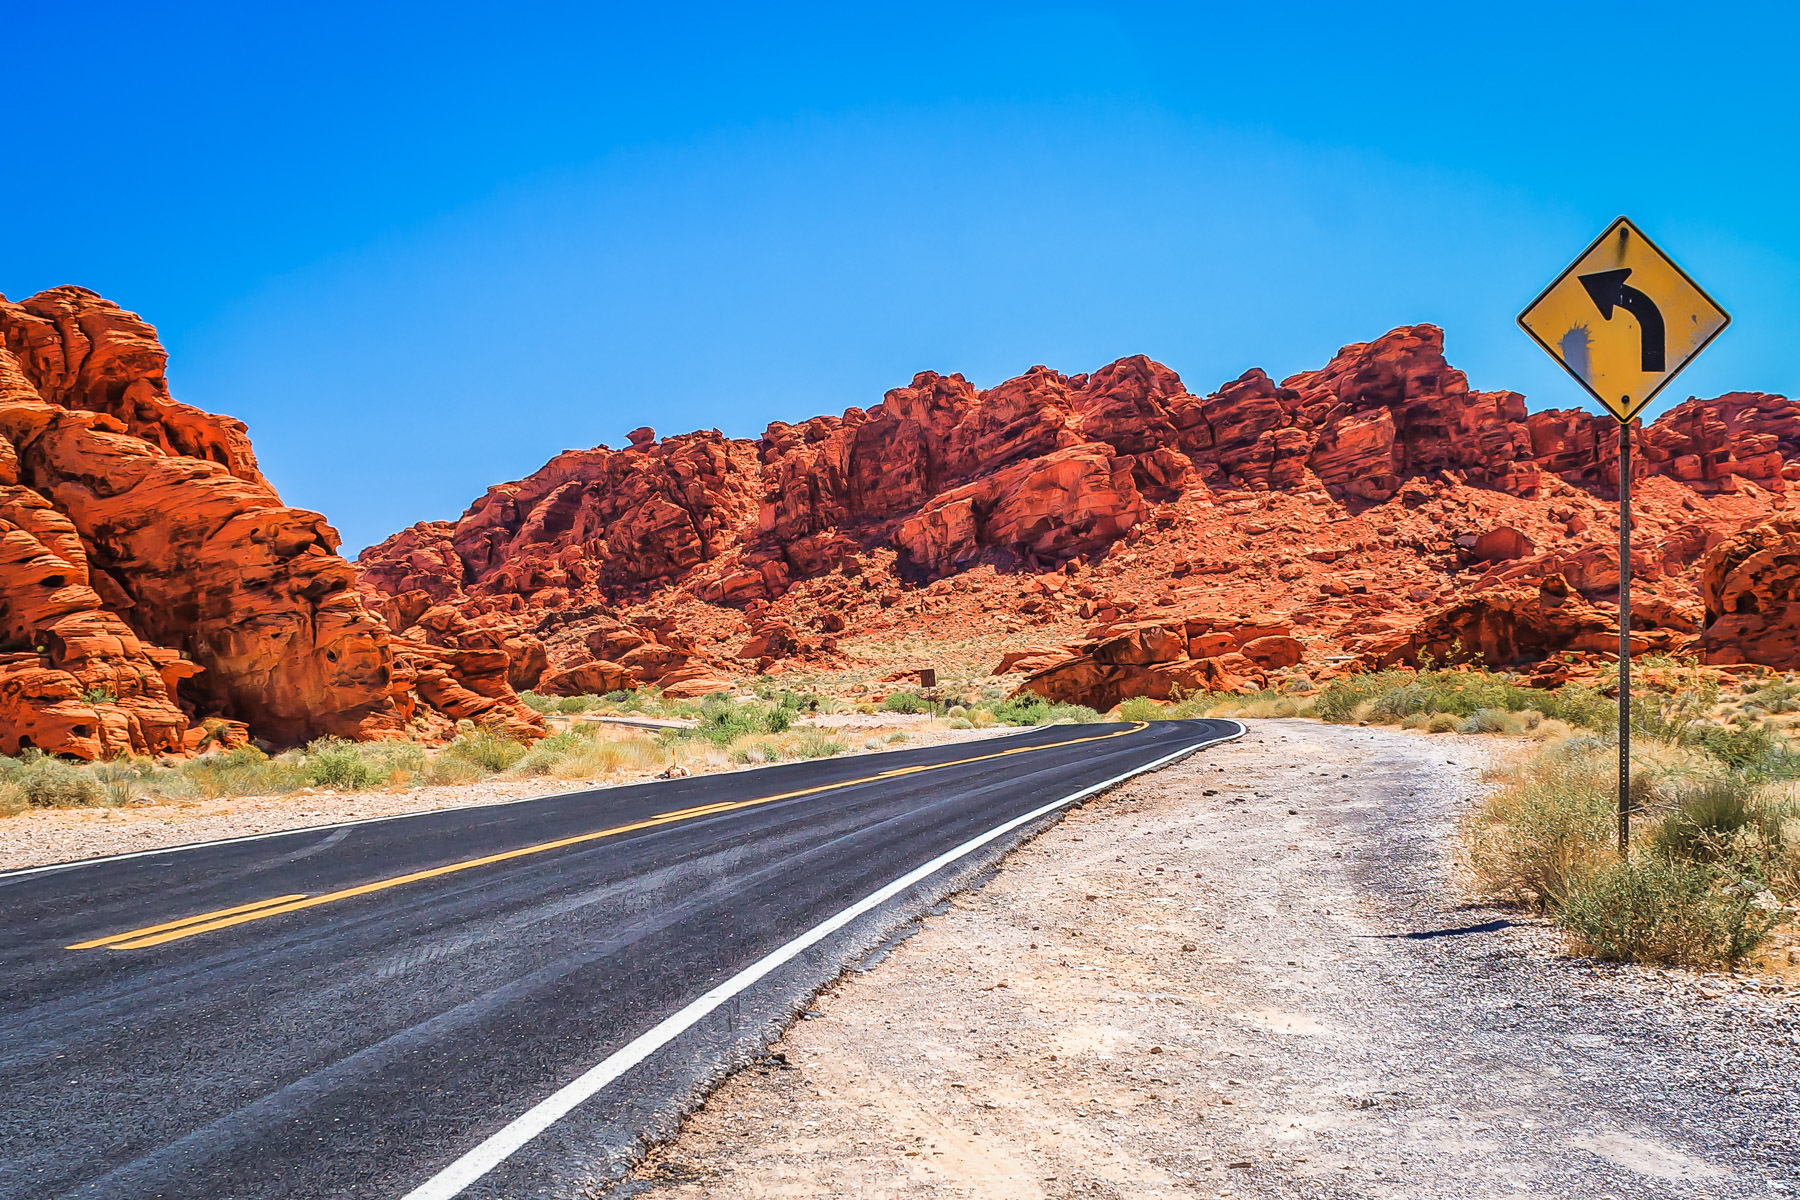 A desert road winds through the rocky landscape of Valley of Fire, Nevada.